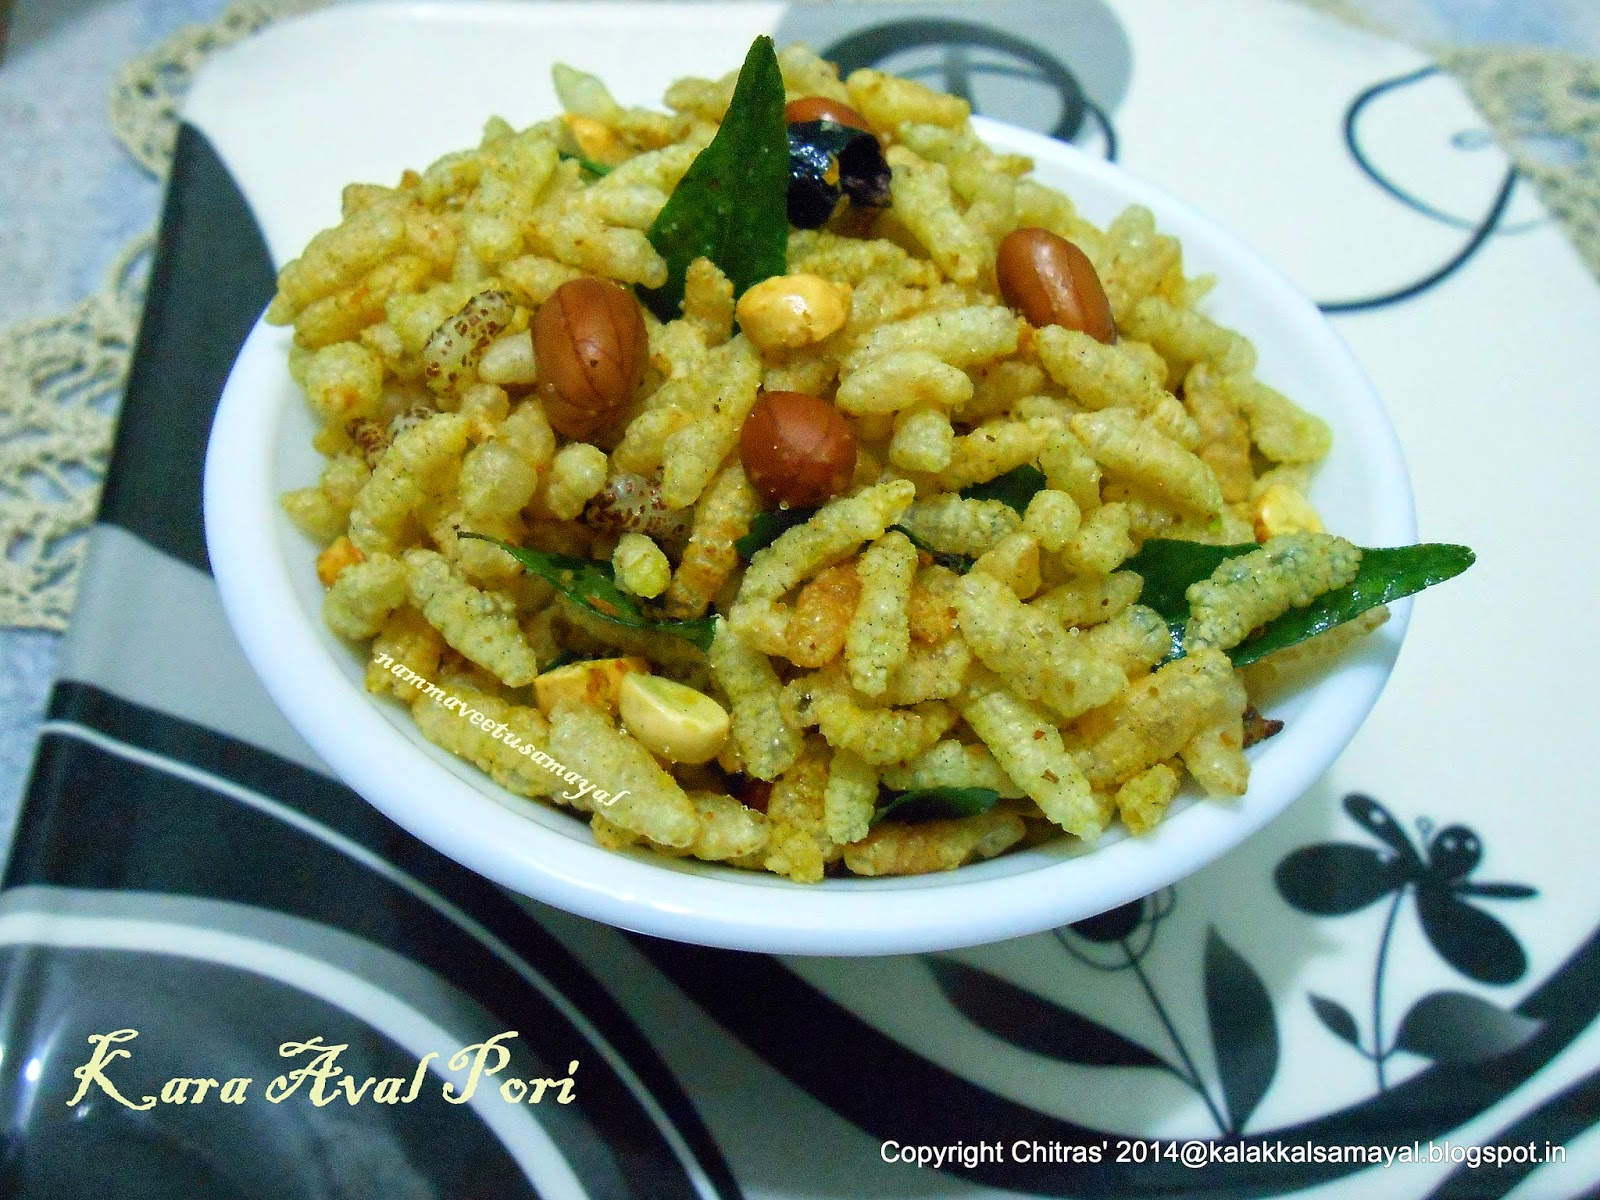 Kalakkalsamayal kara aval pori it is called chivda in hindi here let me present a simple recipe to prepare a spicy evening snack using avalpori forumfinder Choice Image